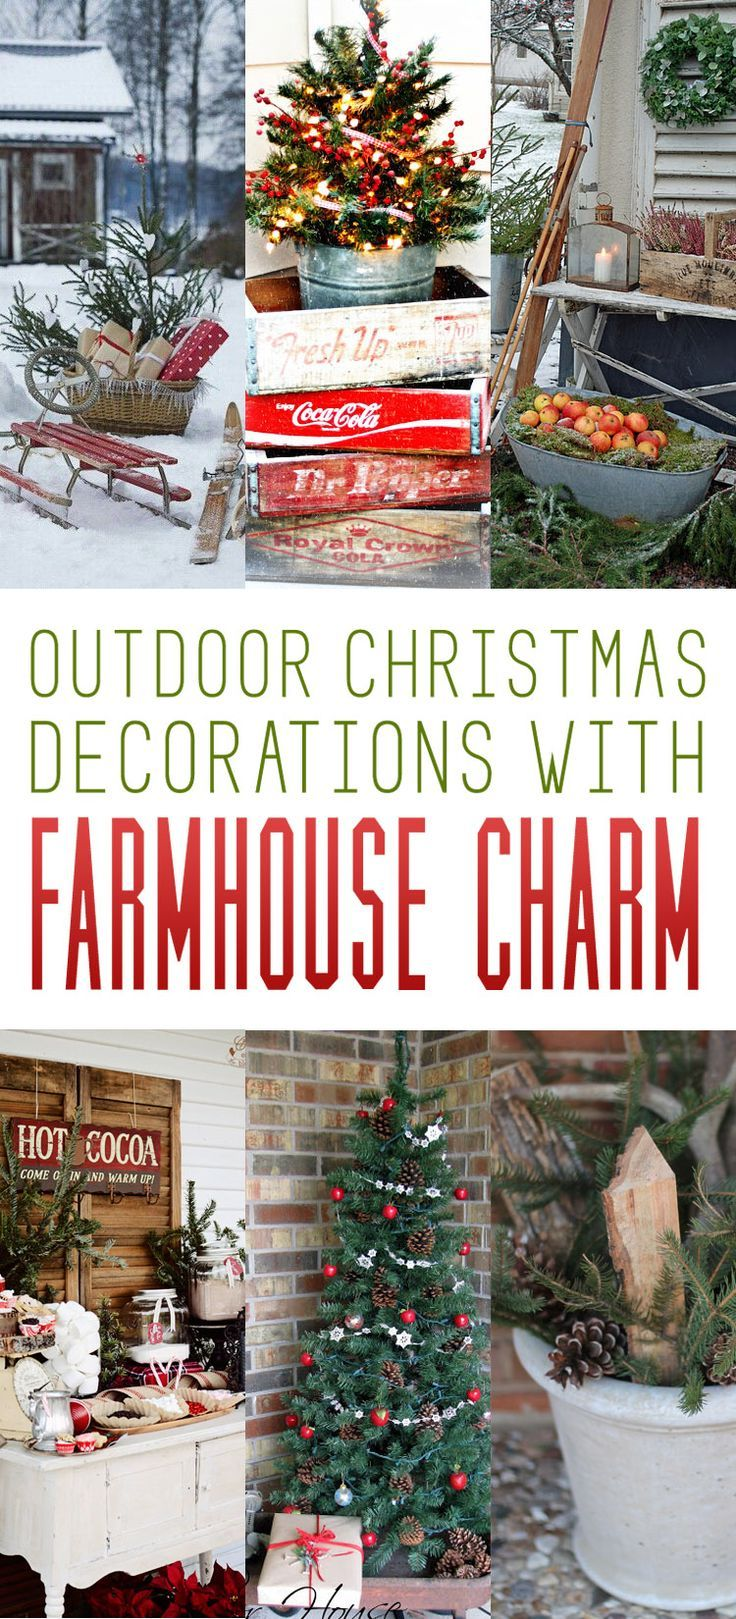 if you are looking for some ideas and inspiration on how to decorate you outdoor spacecheck out our outdoor christmas decorations with farmhouse charm - Farmhouse Outdoor Christmas Decorations